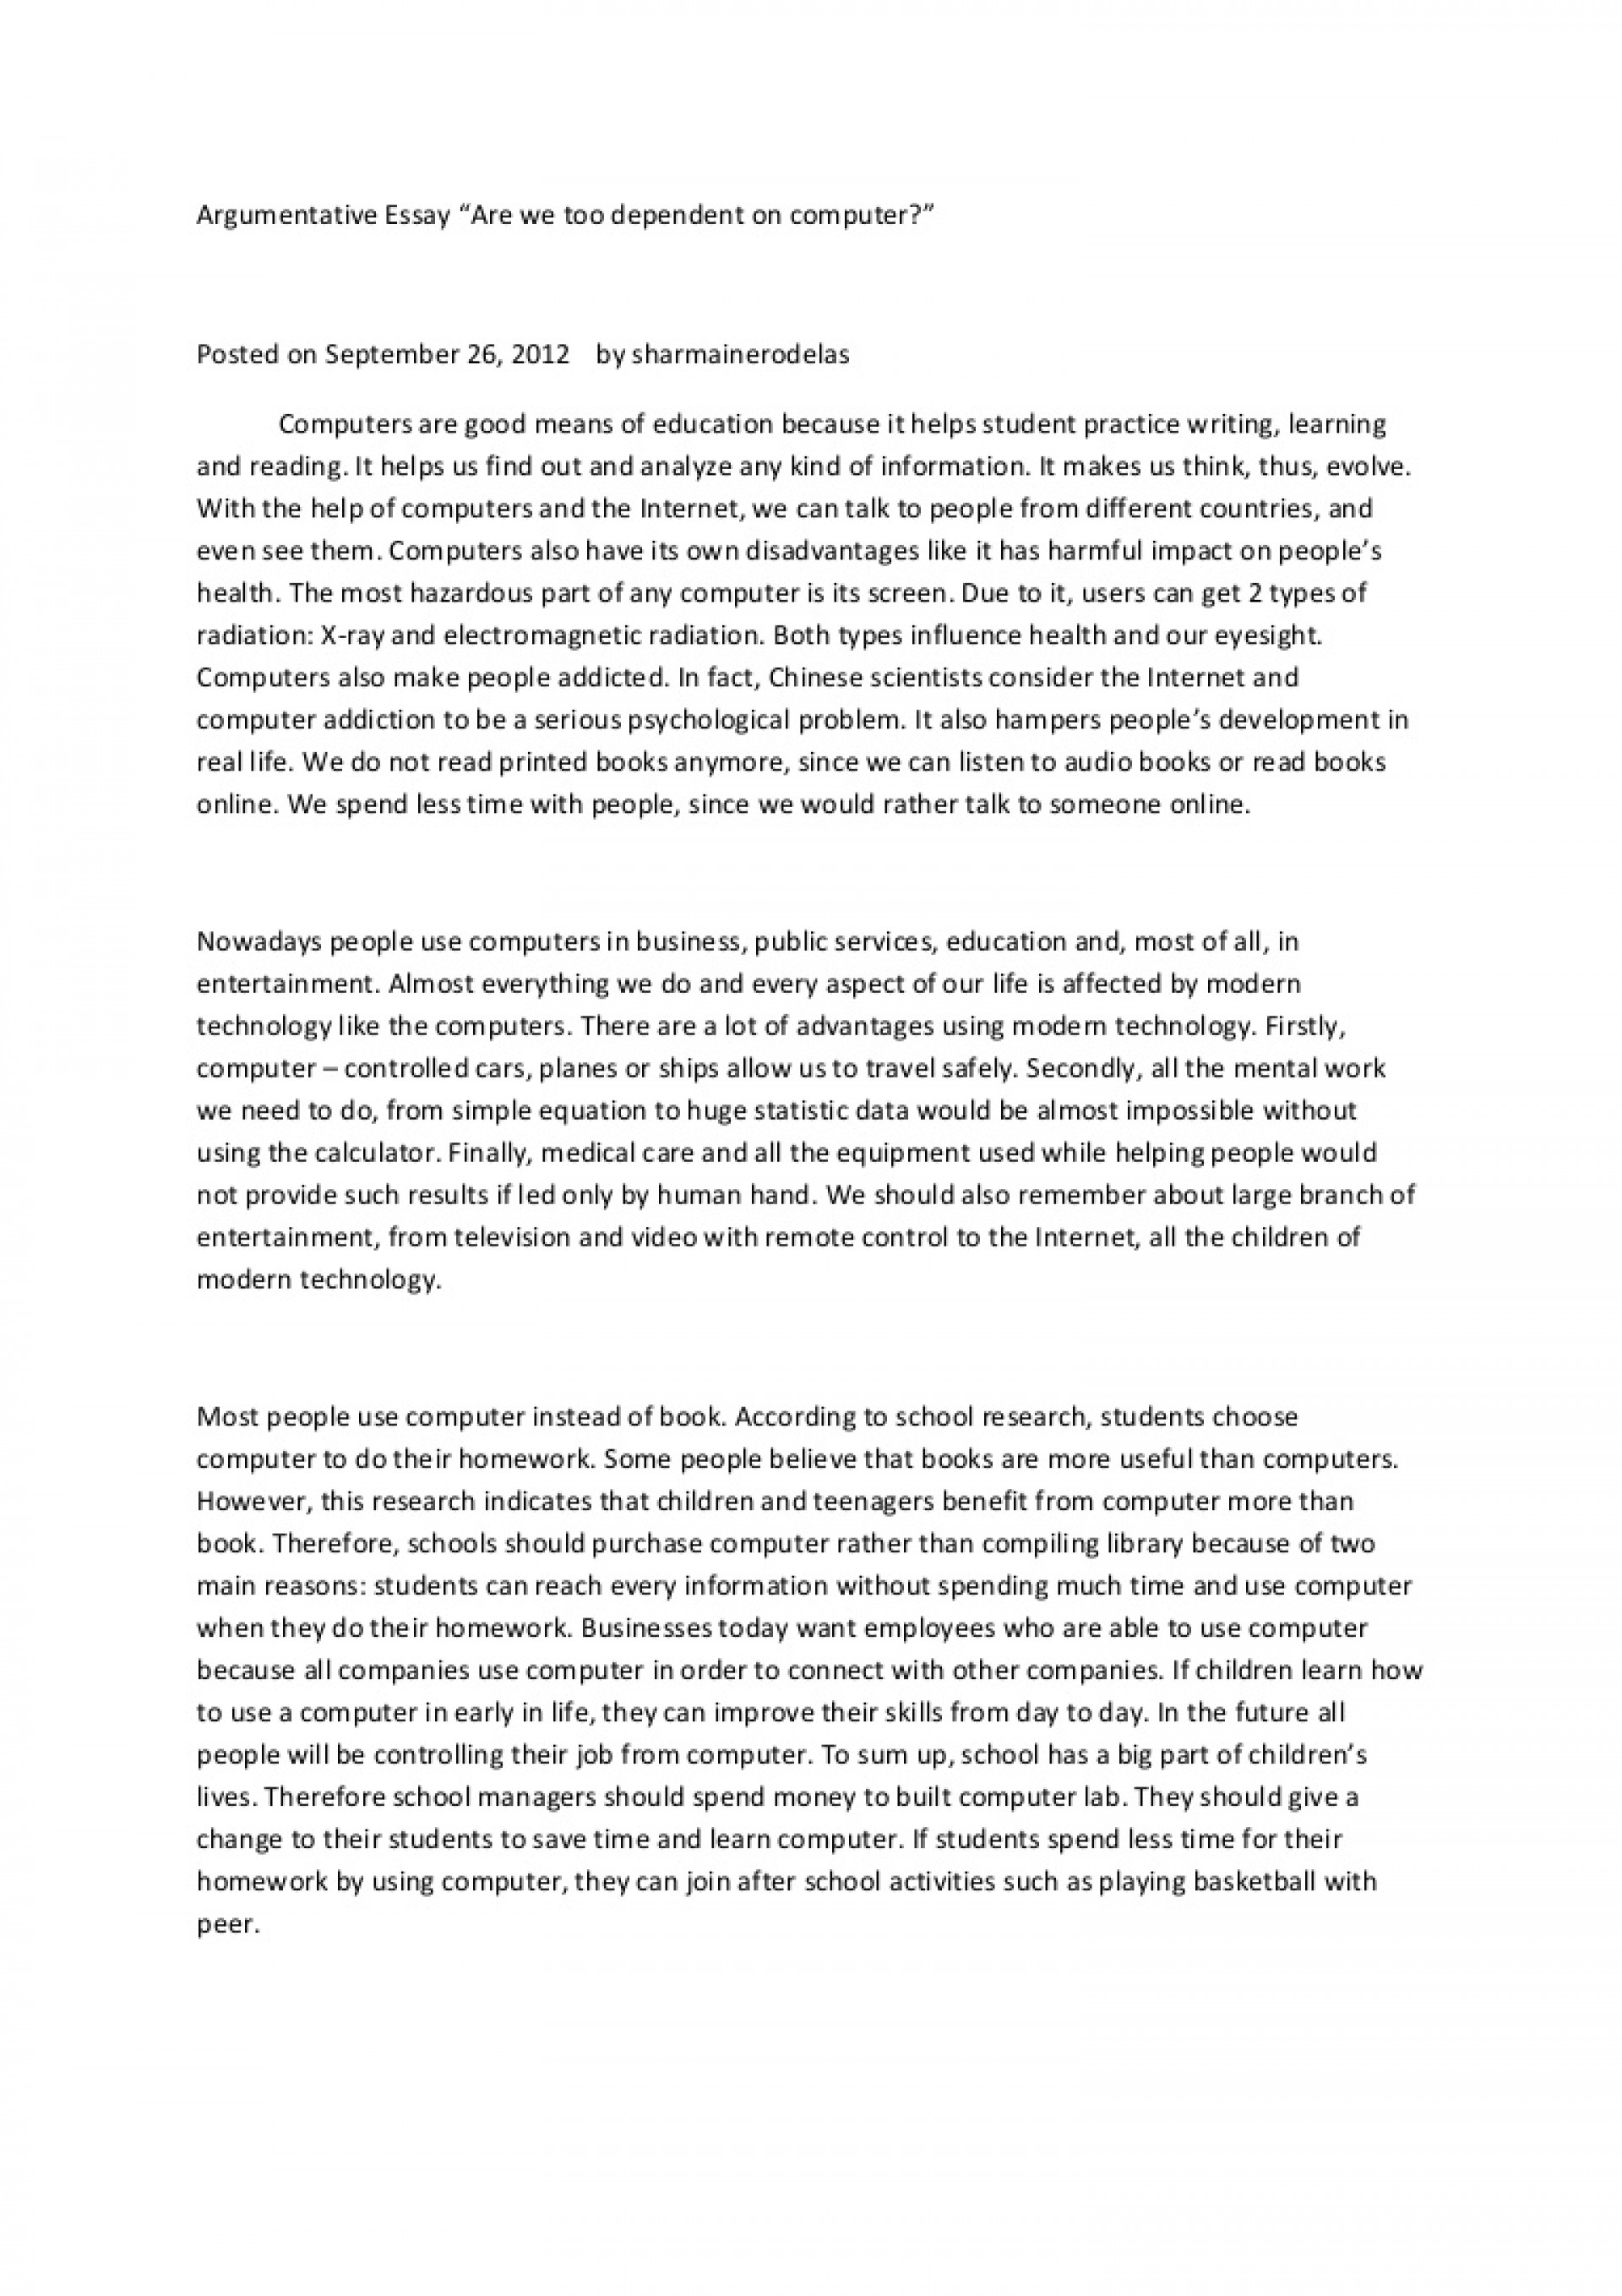 002 U003d1406878382 Essay Example About Modern Wonderful Technology Pros And Cons In Everyday Life 2050 1920